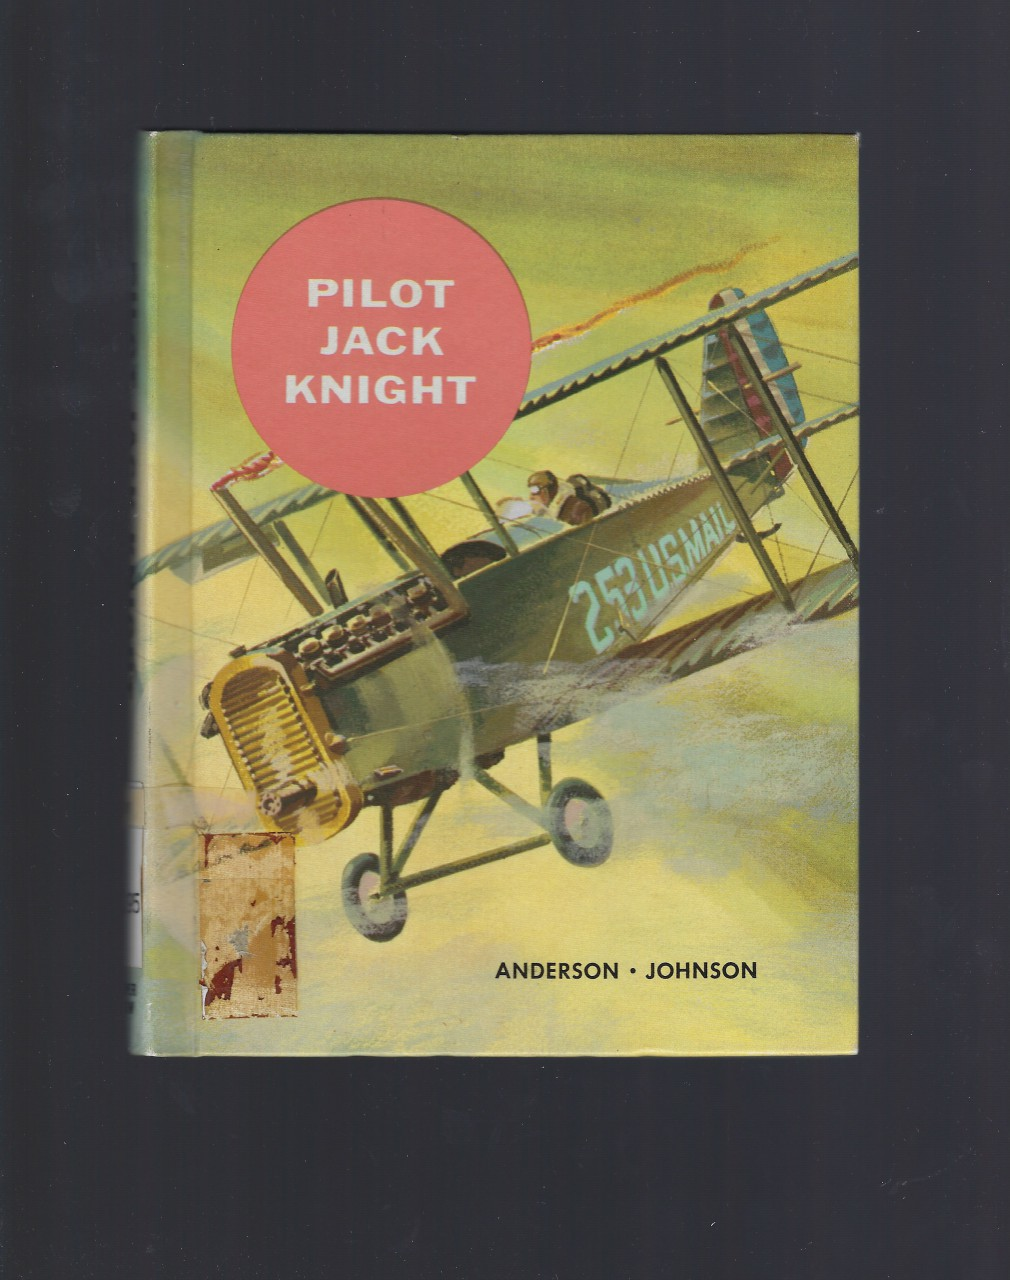 Pilot Jack Knight (American Adventure Series) 1961, A.M. Anderson and R.E. Johnson, Emmett A. Betts